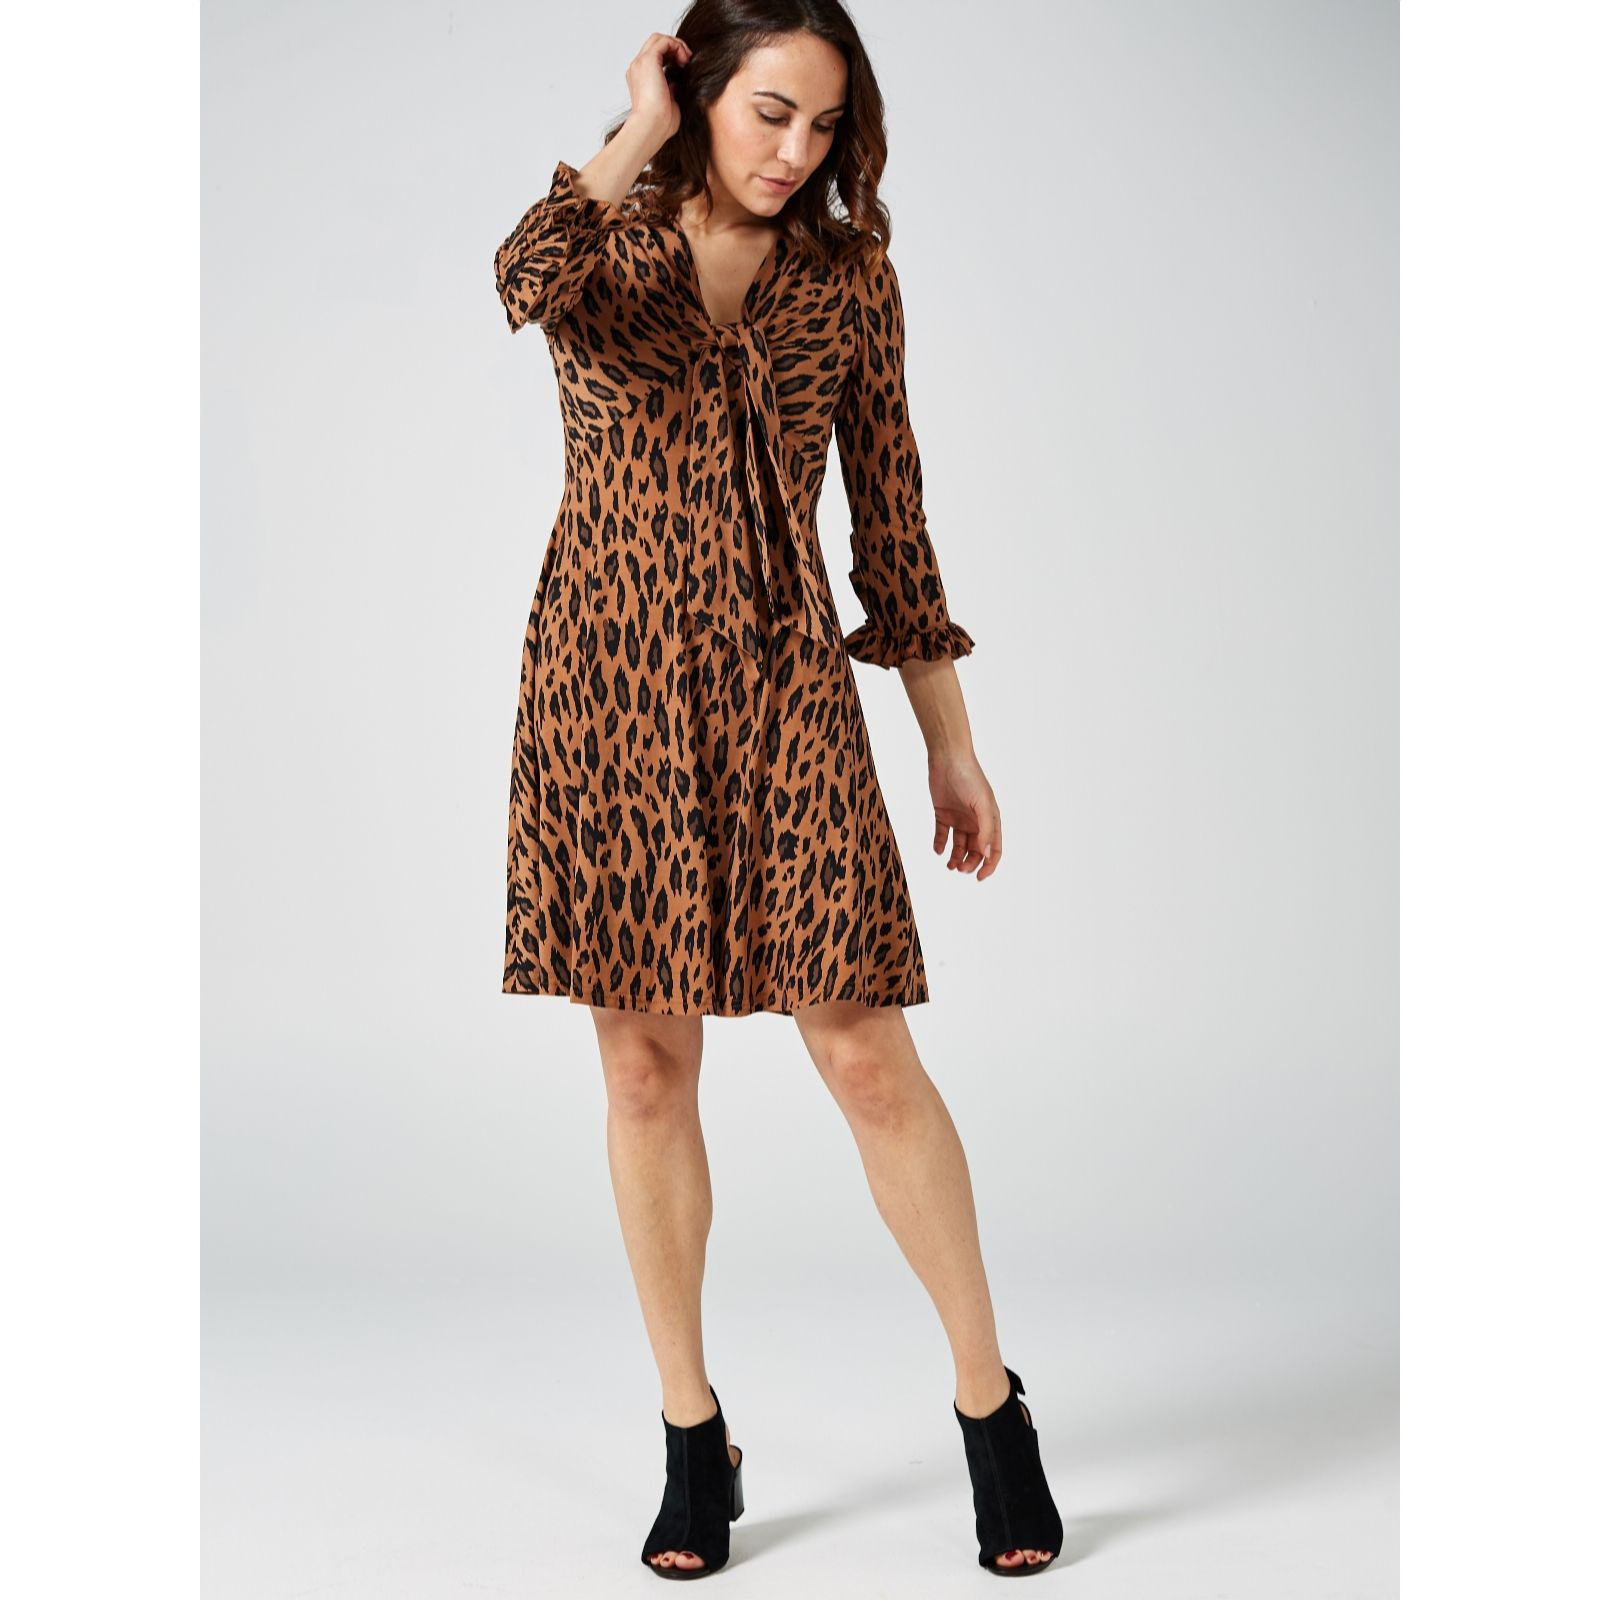 6af59796af96 Jolie Moi Tie Front Leopard Print knee length Dress - QVC UK